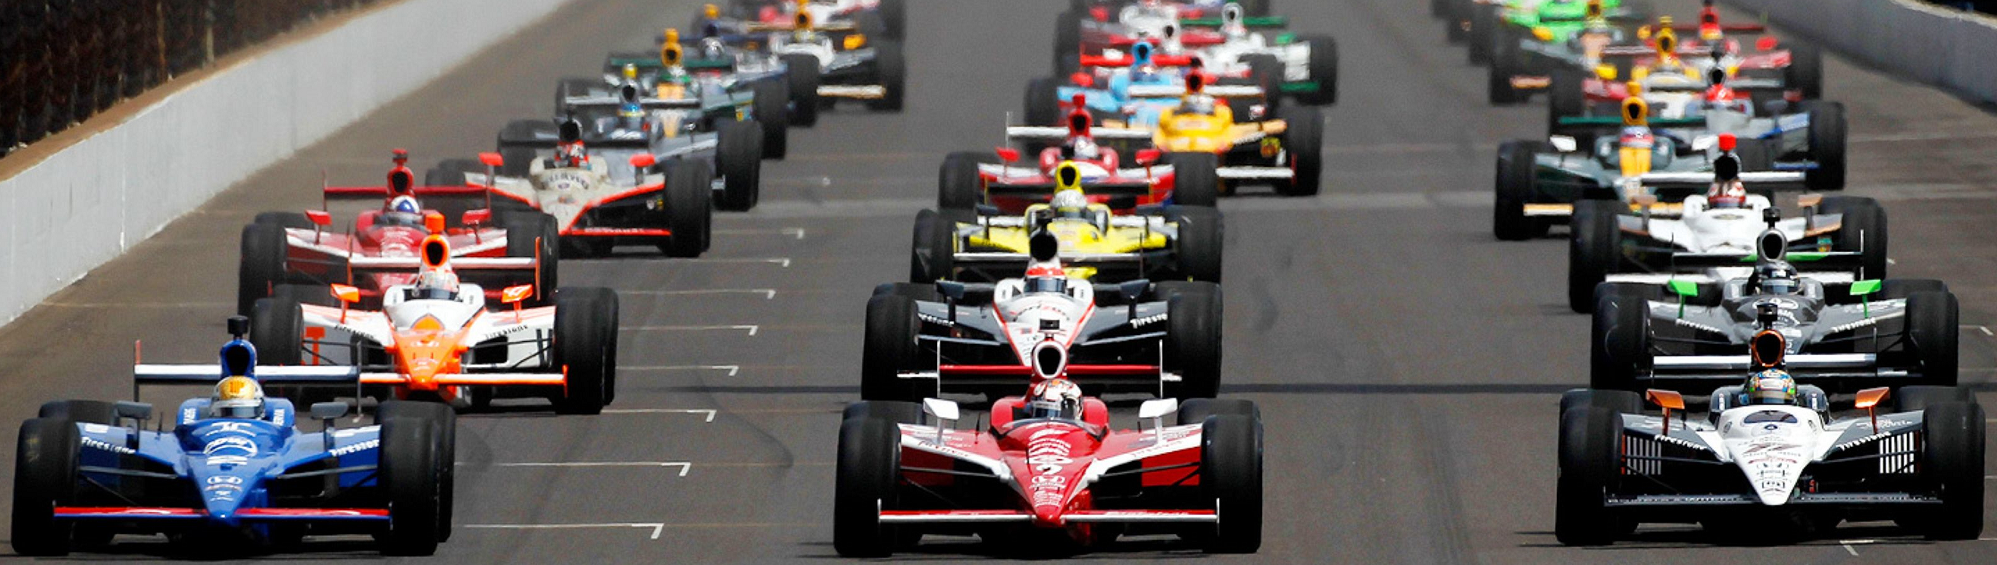 For those of you that love racing, this is the weekend that you have been waiting for. Formula One and IndyCar both have their biggest events of the year taking place this Sunday. NASCAR will also have its longest race of the 2016 Sprint Cup season immediately following the Indy 500 and the Grand Prix of Monaco. Here is a recap of what you can expect this weekend as you get ready for over 1,200 miles of world class racing.